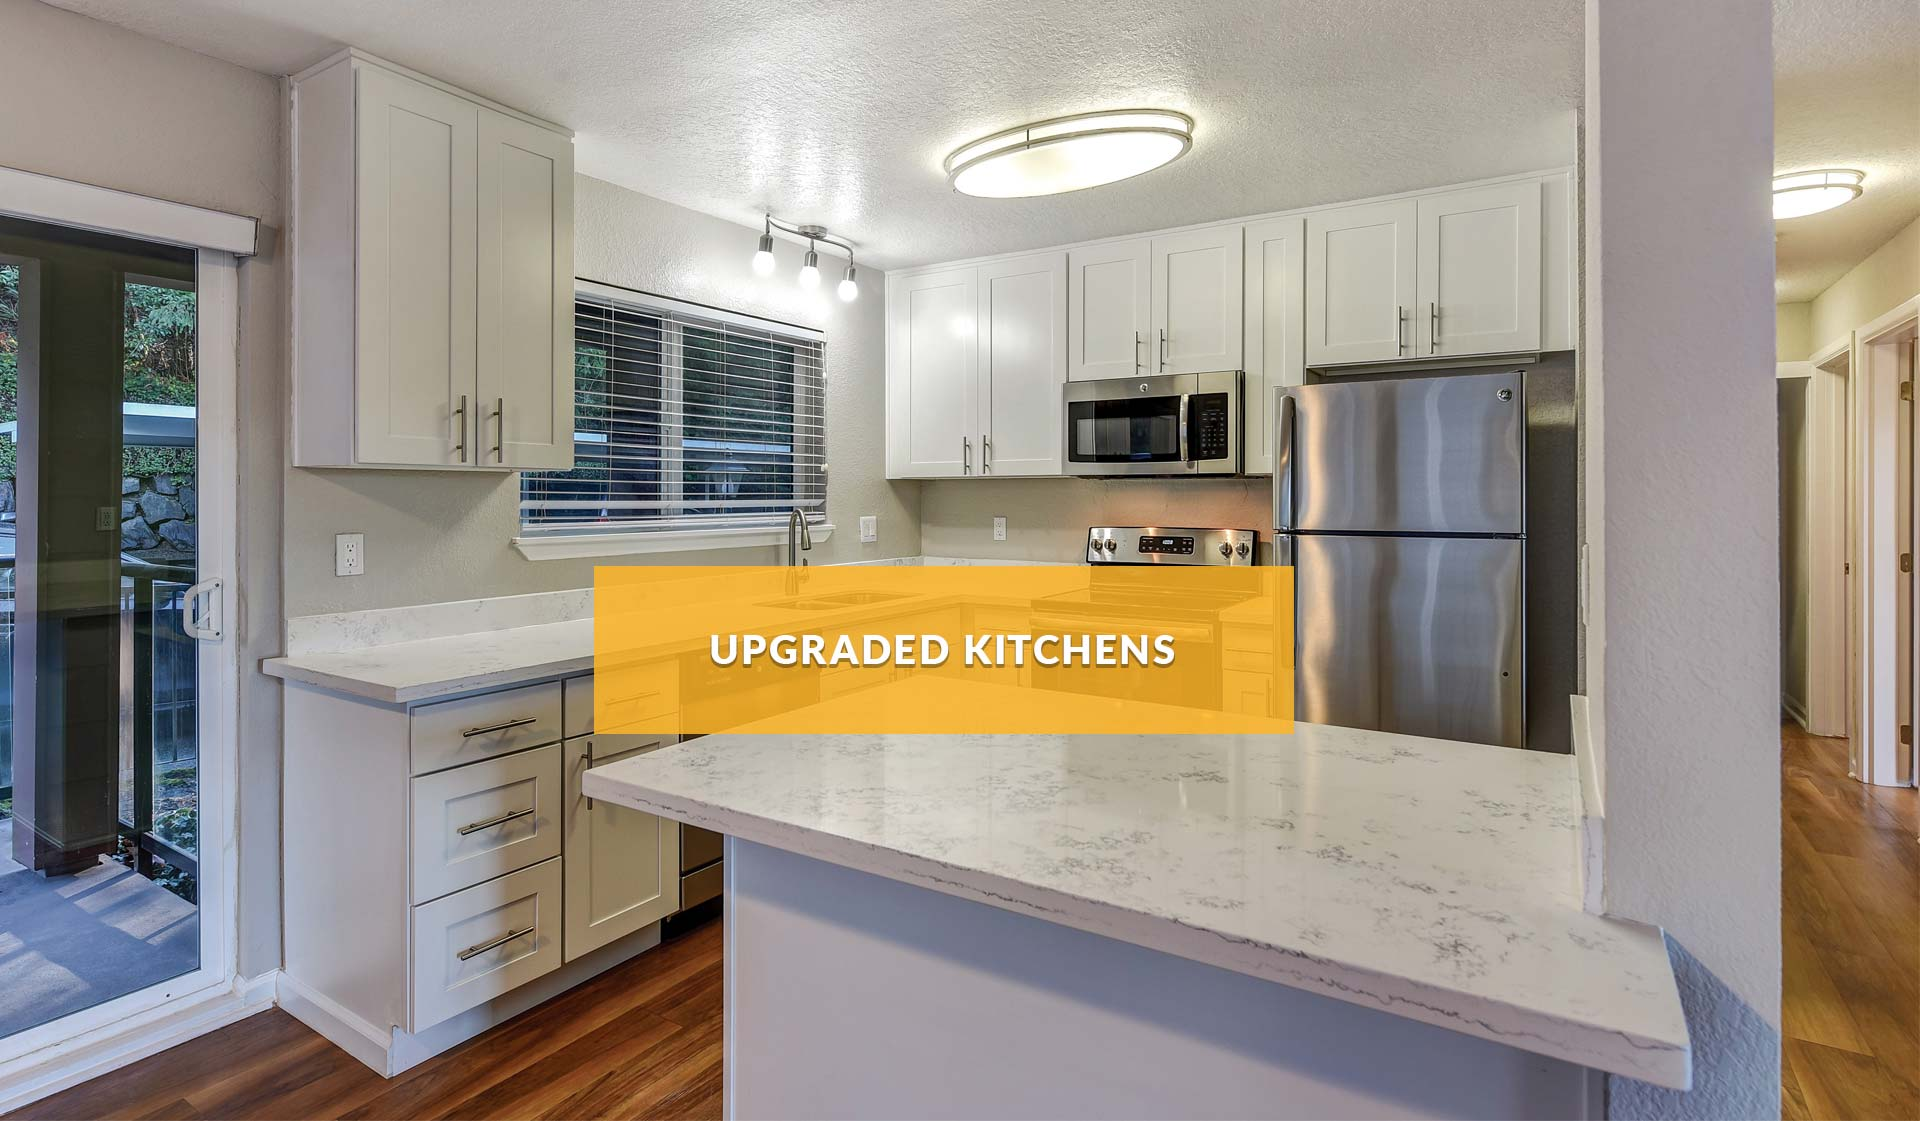 Cedar Rim Apartments - modern kitchen with with cabinets and marbled countertops - newcastle, washington